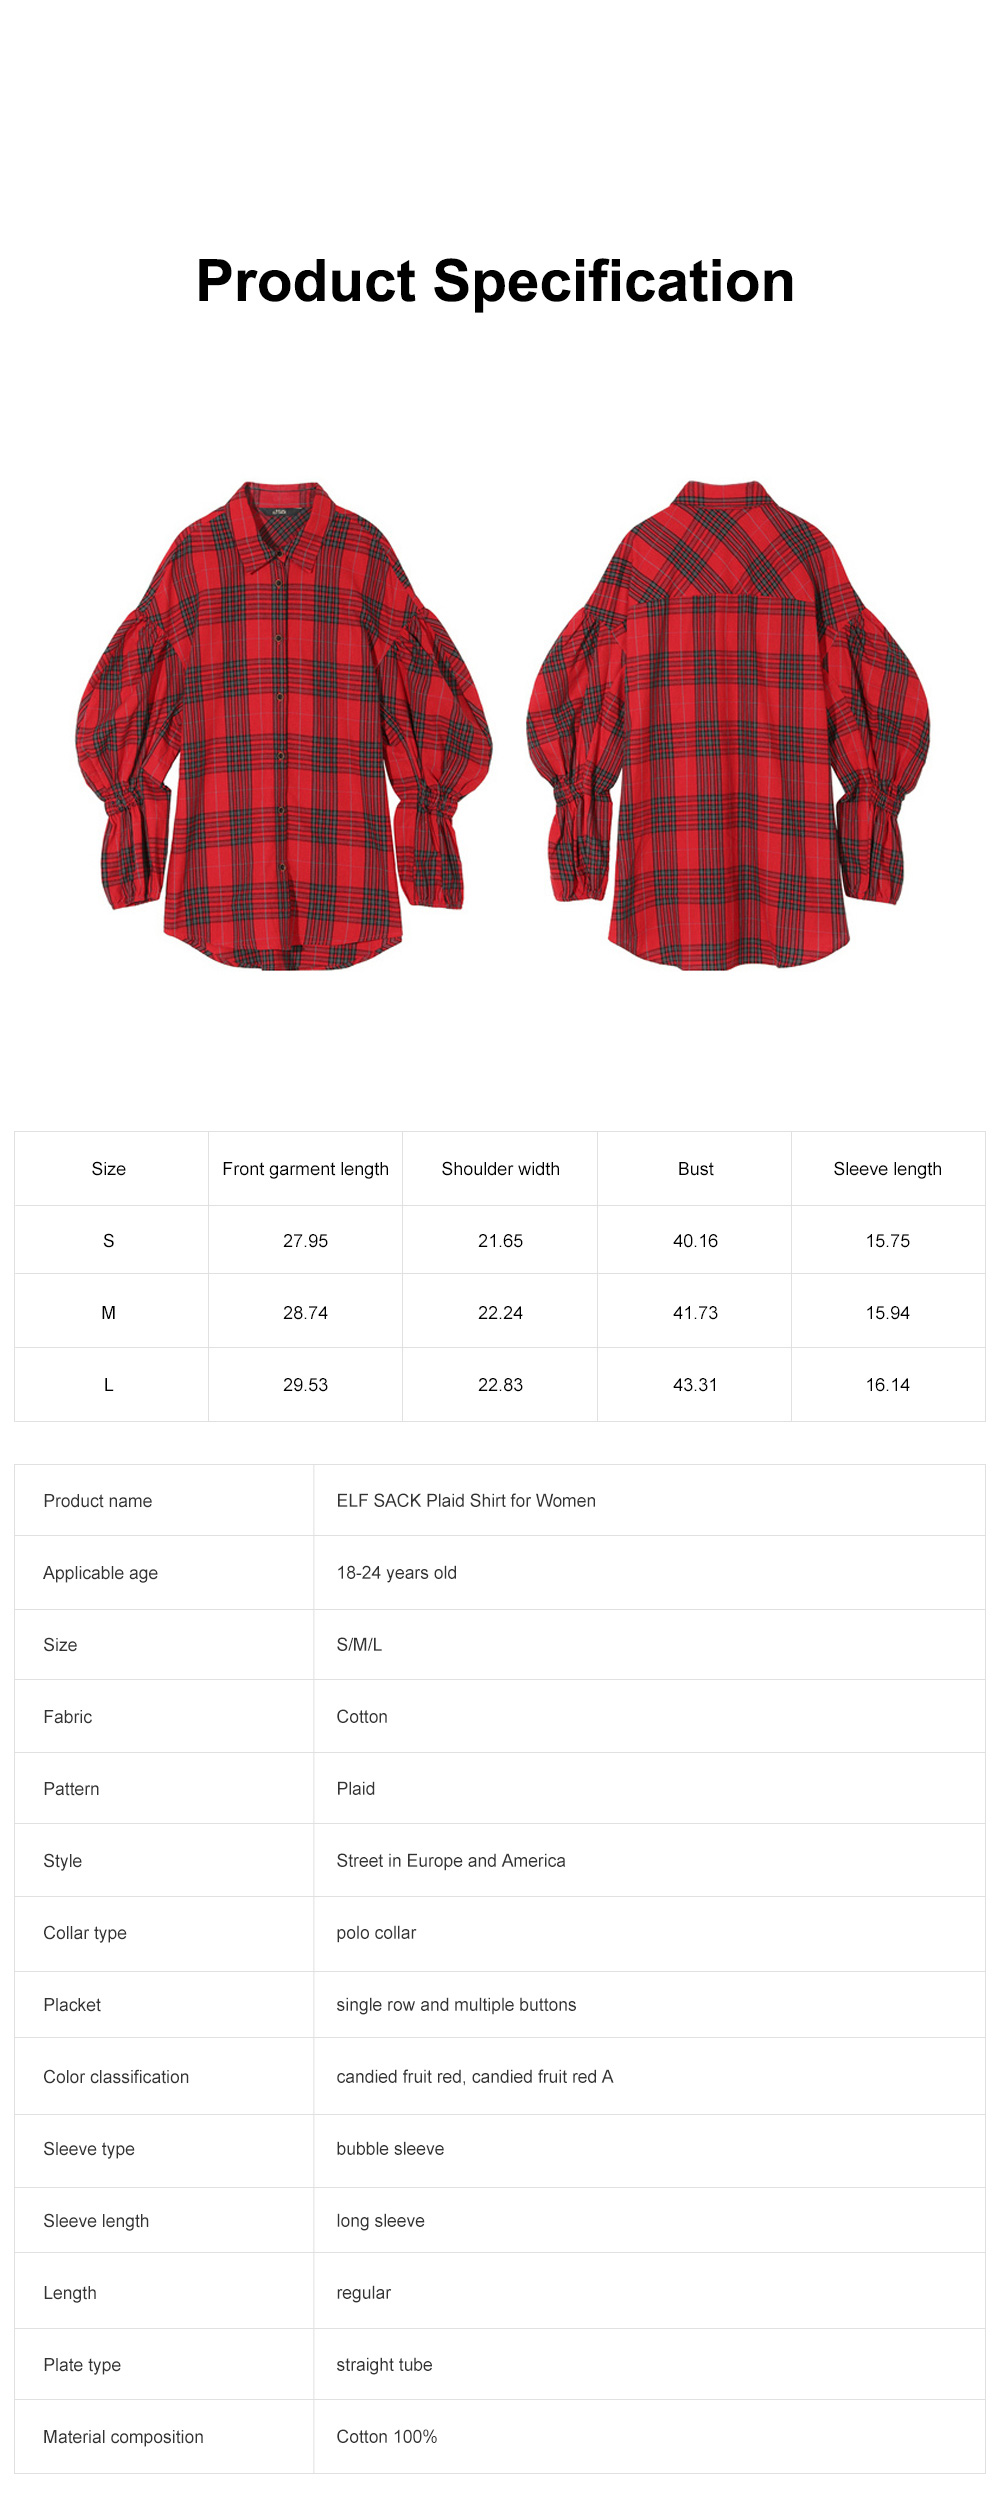 ELF SACK Plaid Shirt for Women Retro Style Women's Shirt New Korean Student Bubble Sleeve Top 2019 New 6